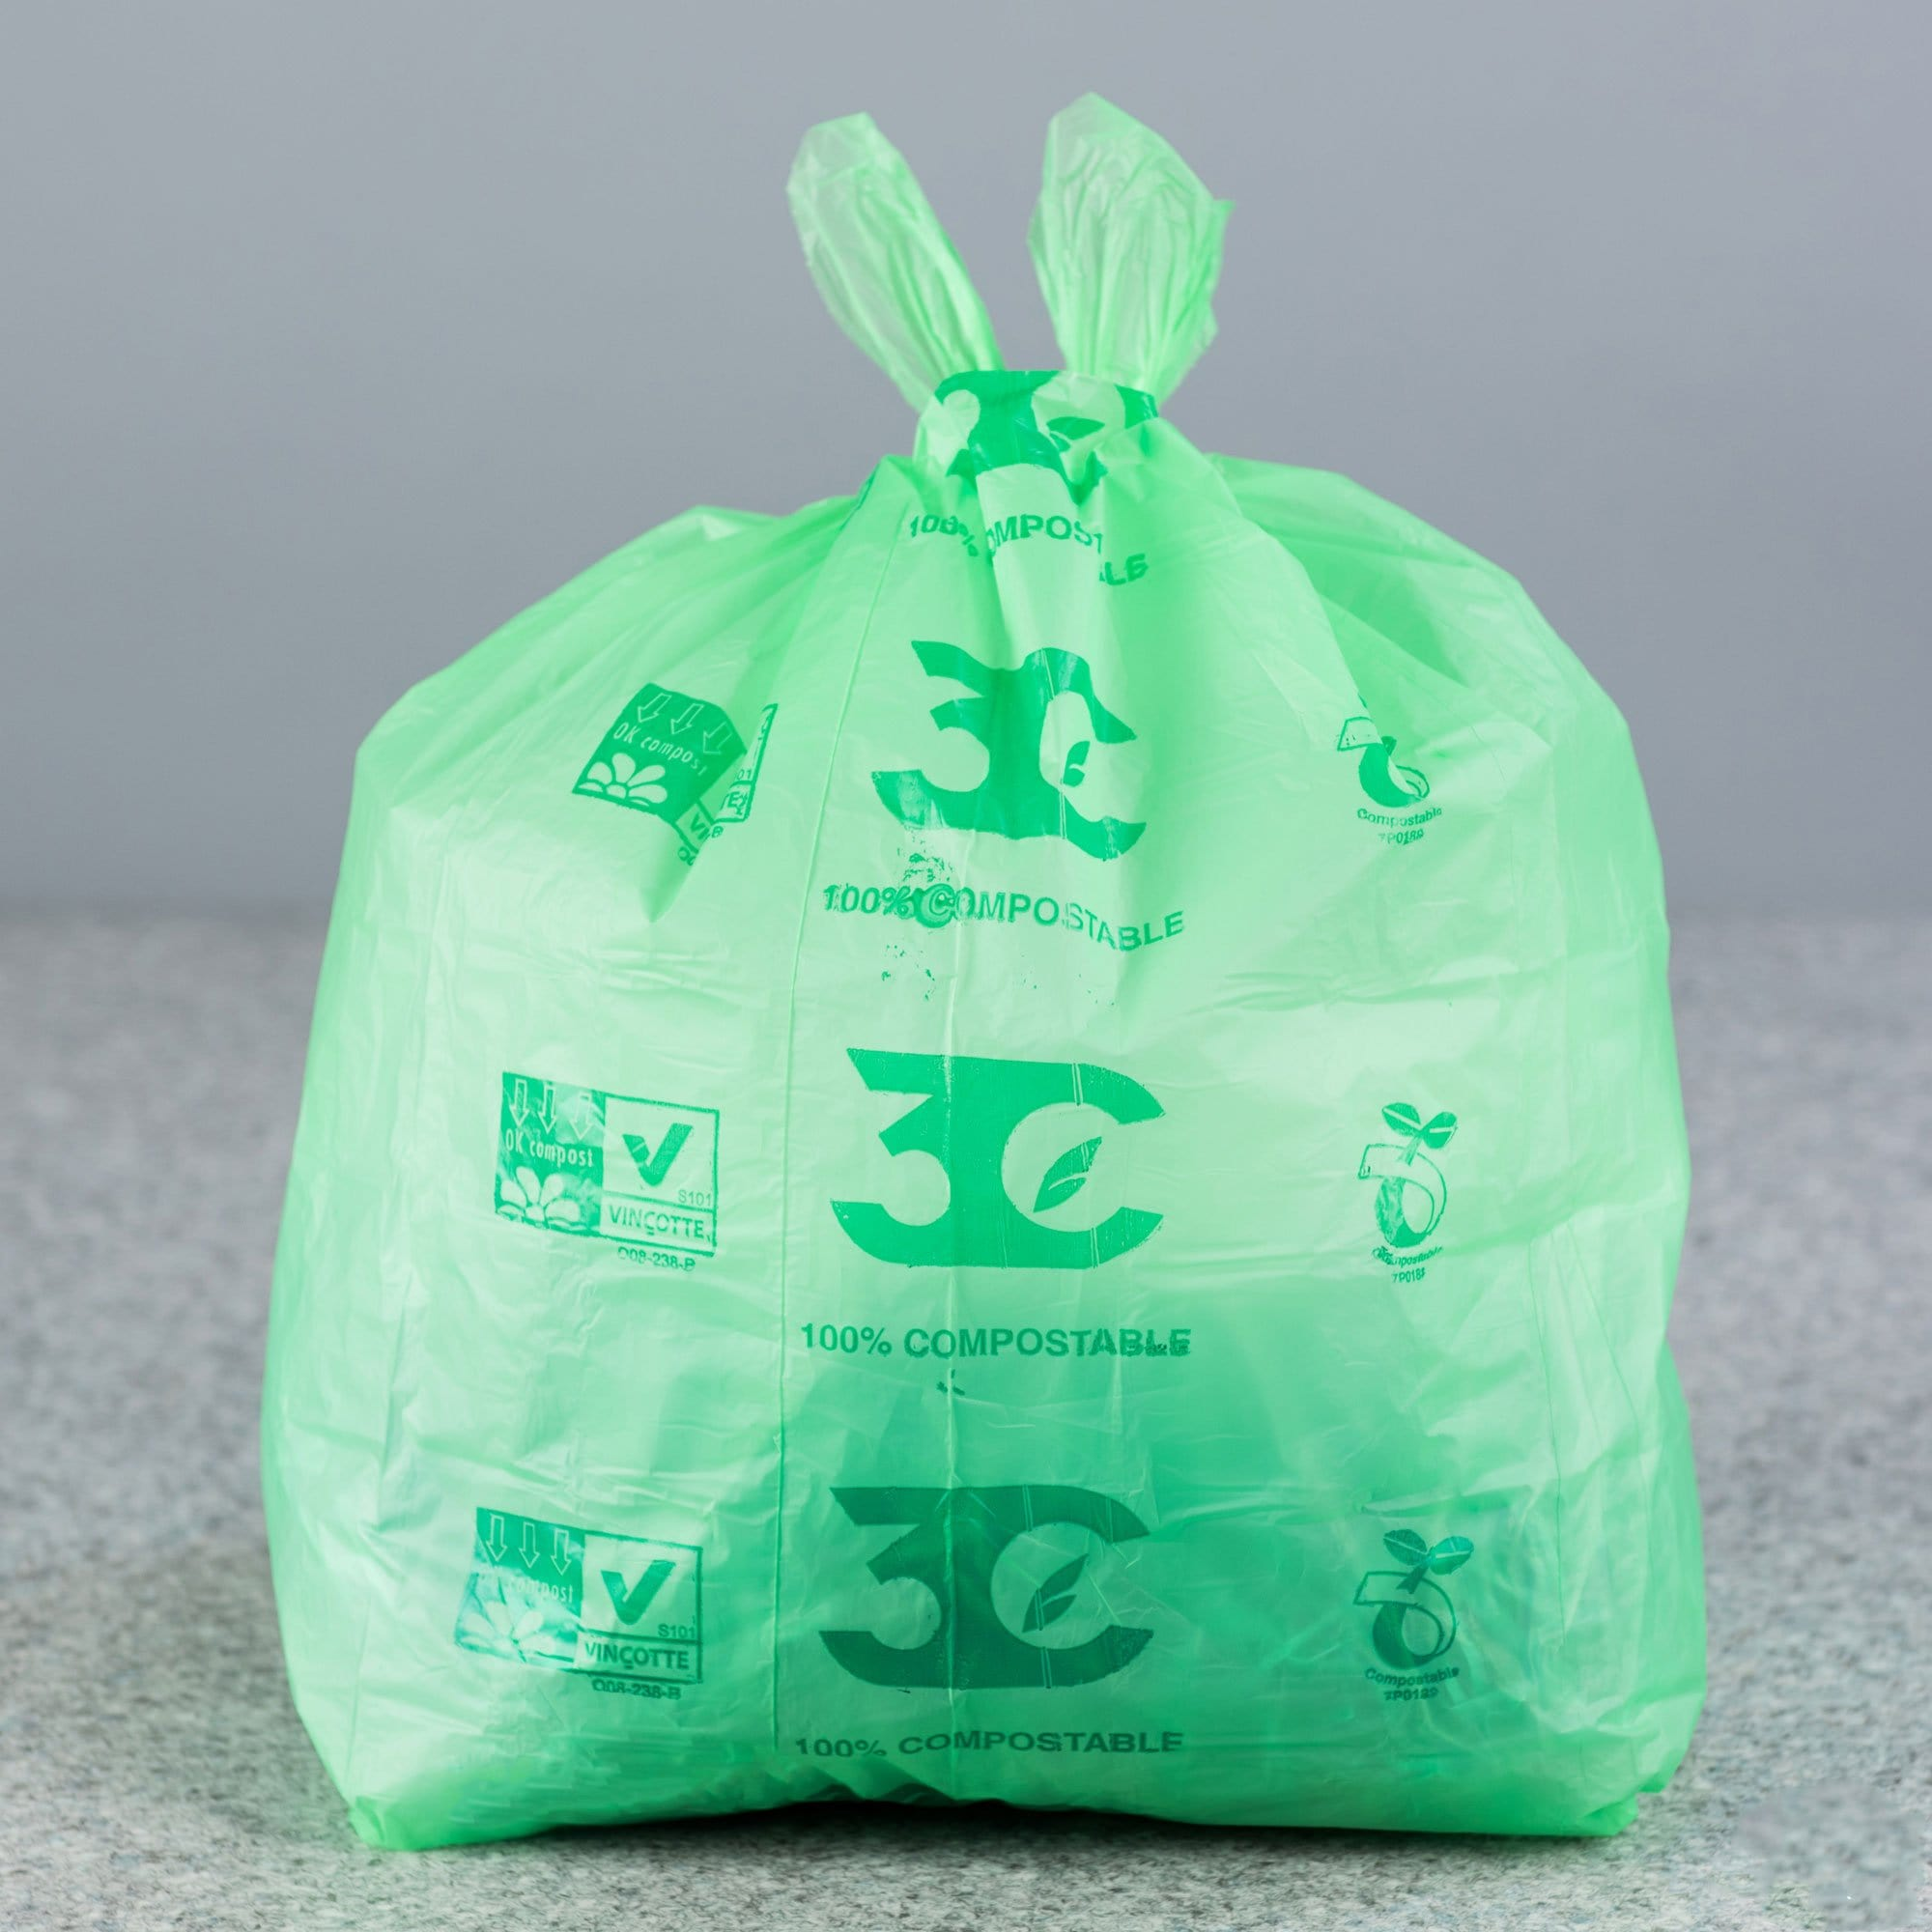 Bin Bags - Compostable - NaturePac